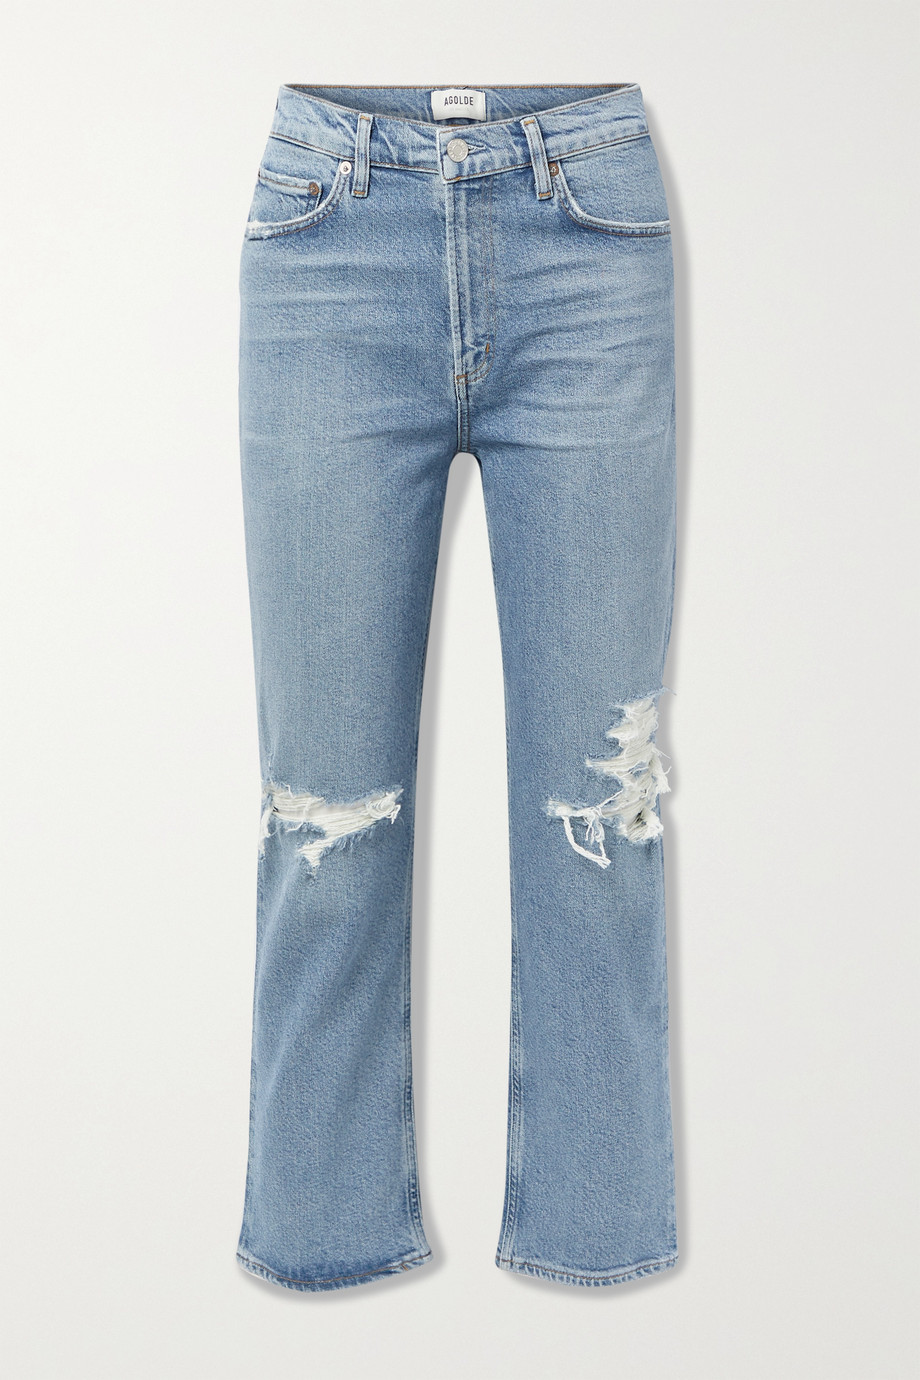 AGOLDE + NET SUSTAIN Wilder organic distressed high-rise straight-leg jeans